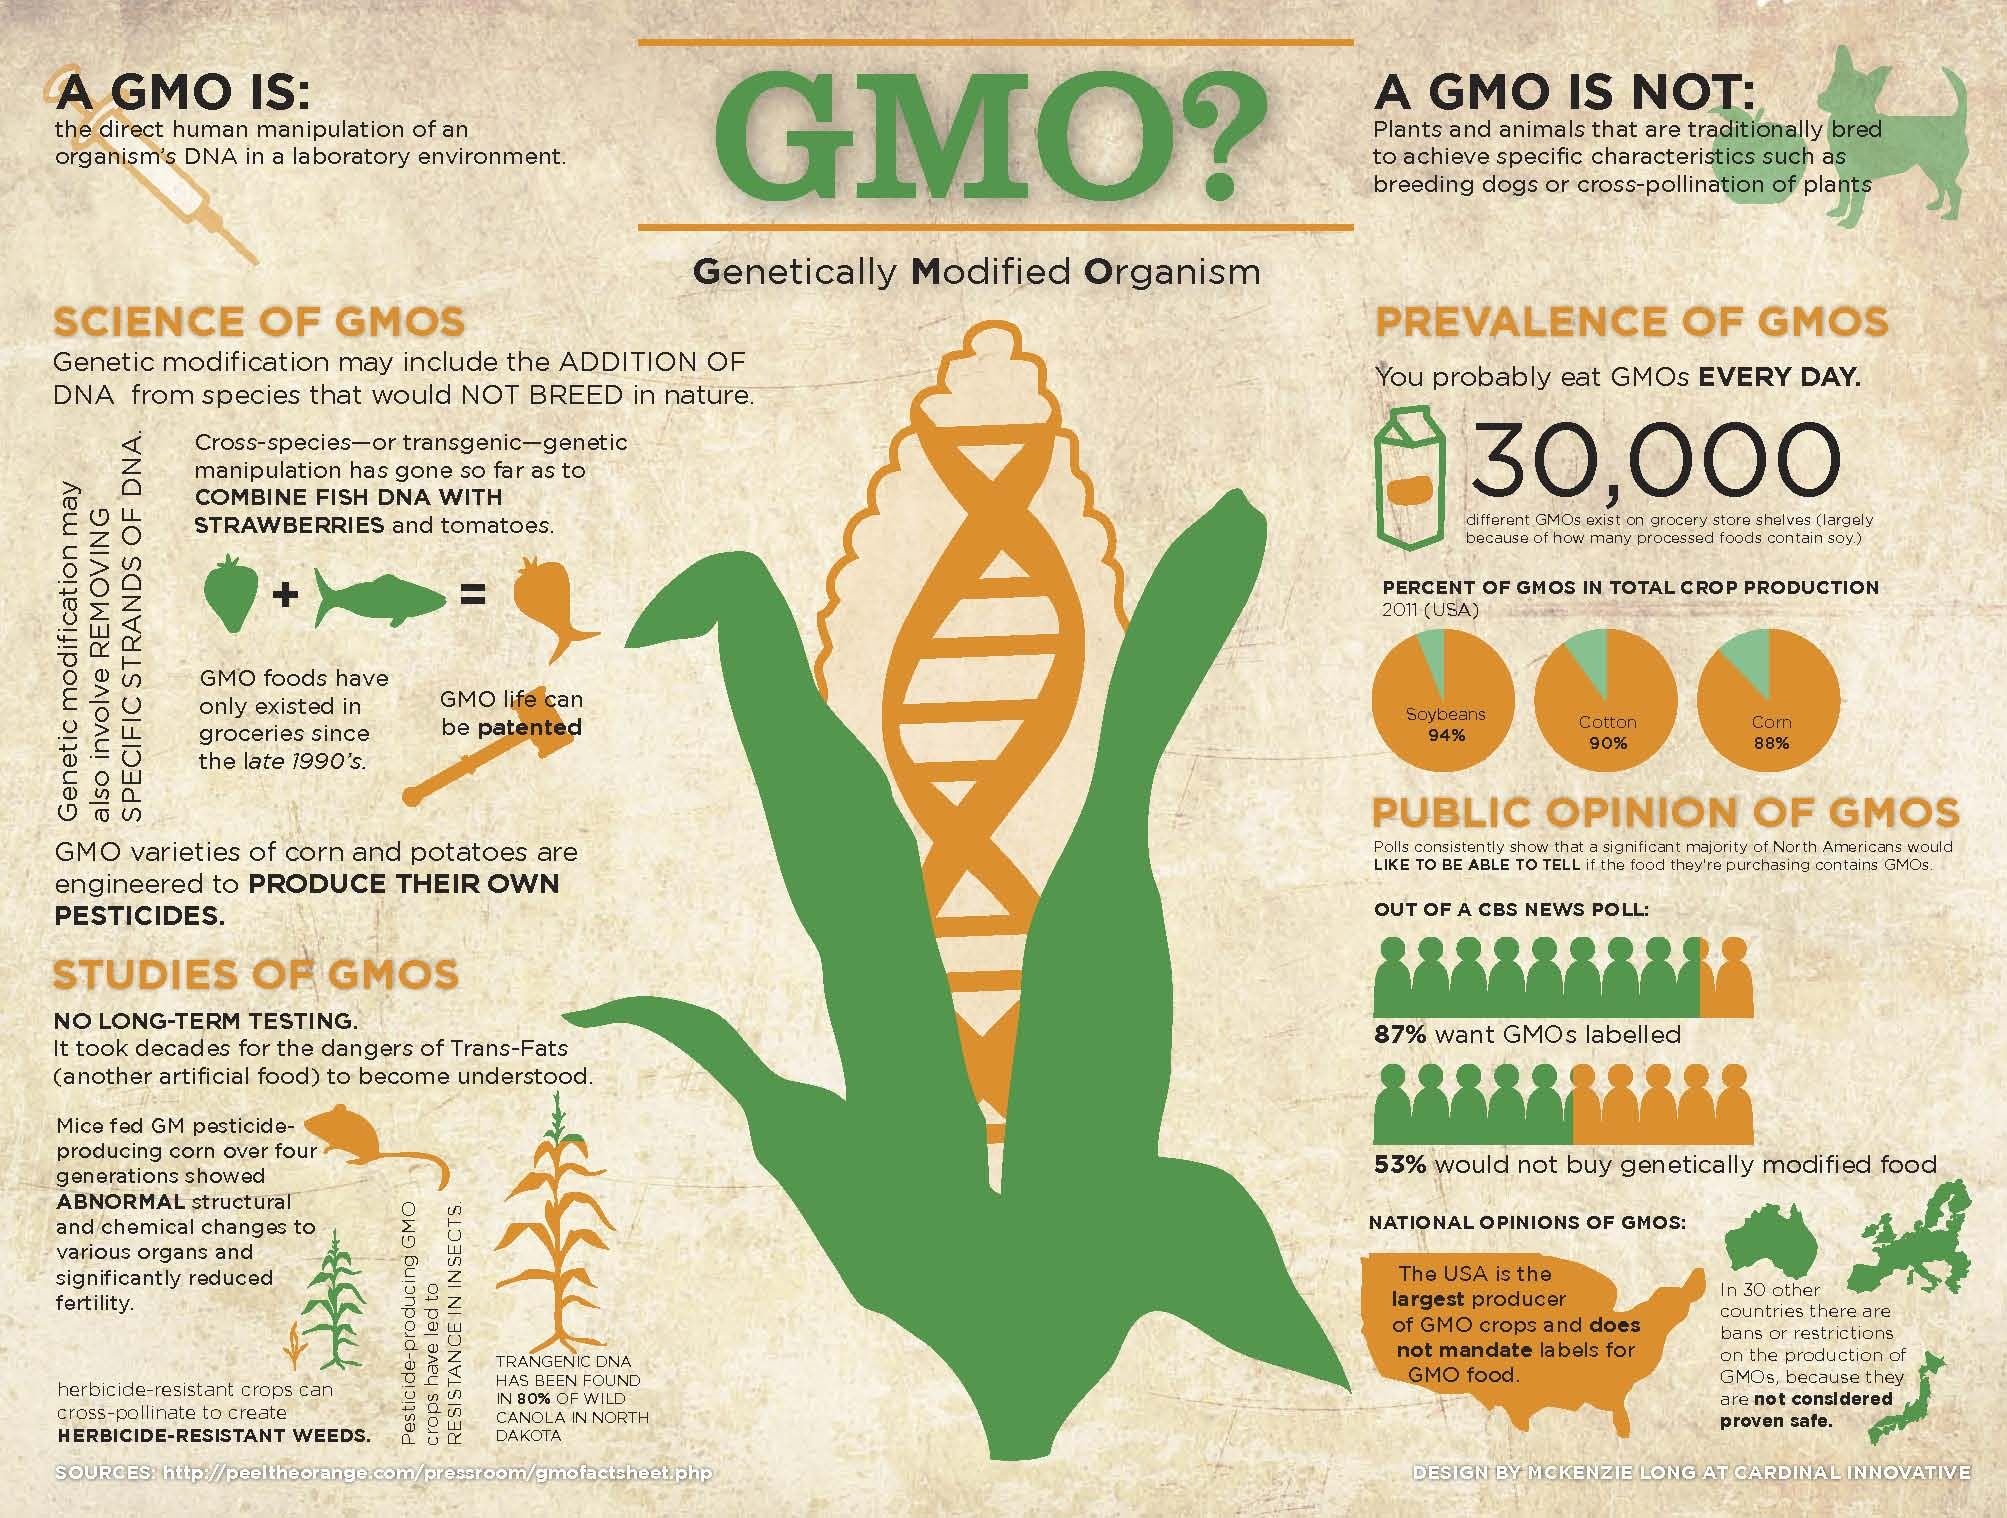 If It I Really Safe Why Not Label So We Can Decide For Ourselve Gmo Fact Genetically Modified Food Foods Organism Pro And Con List